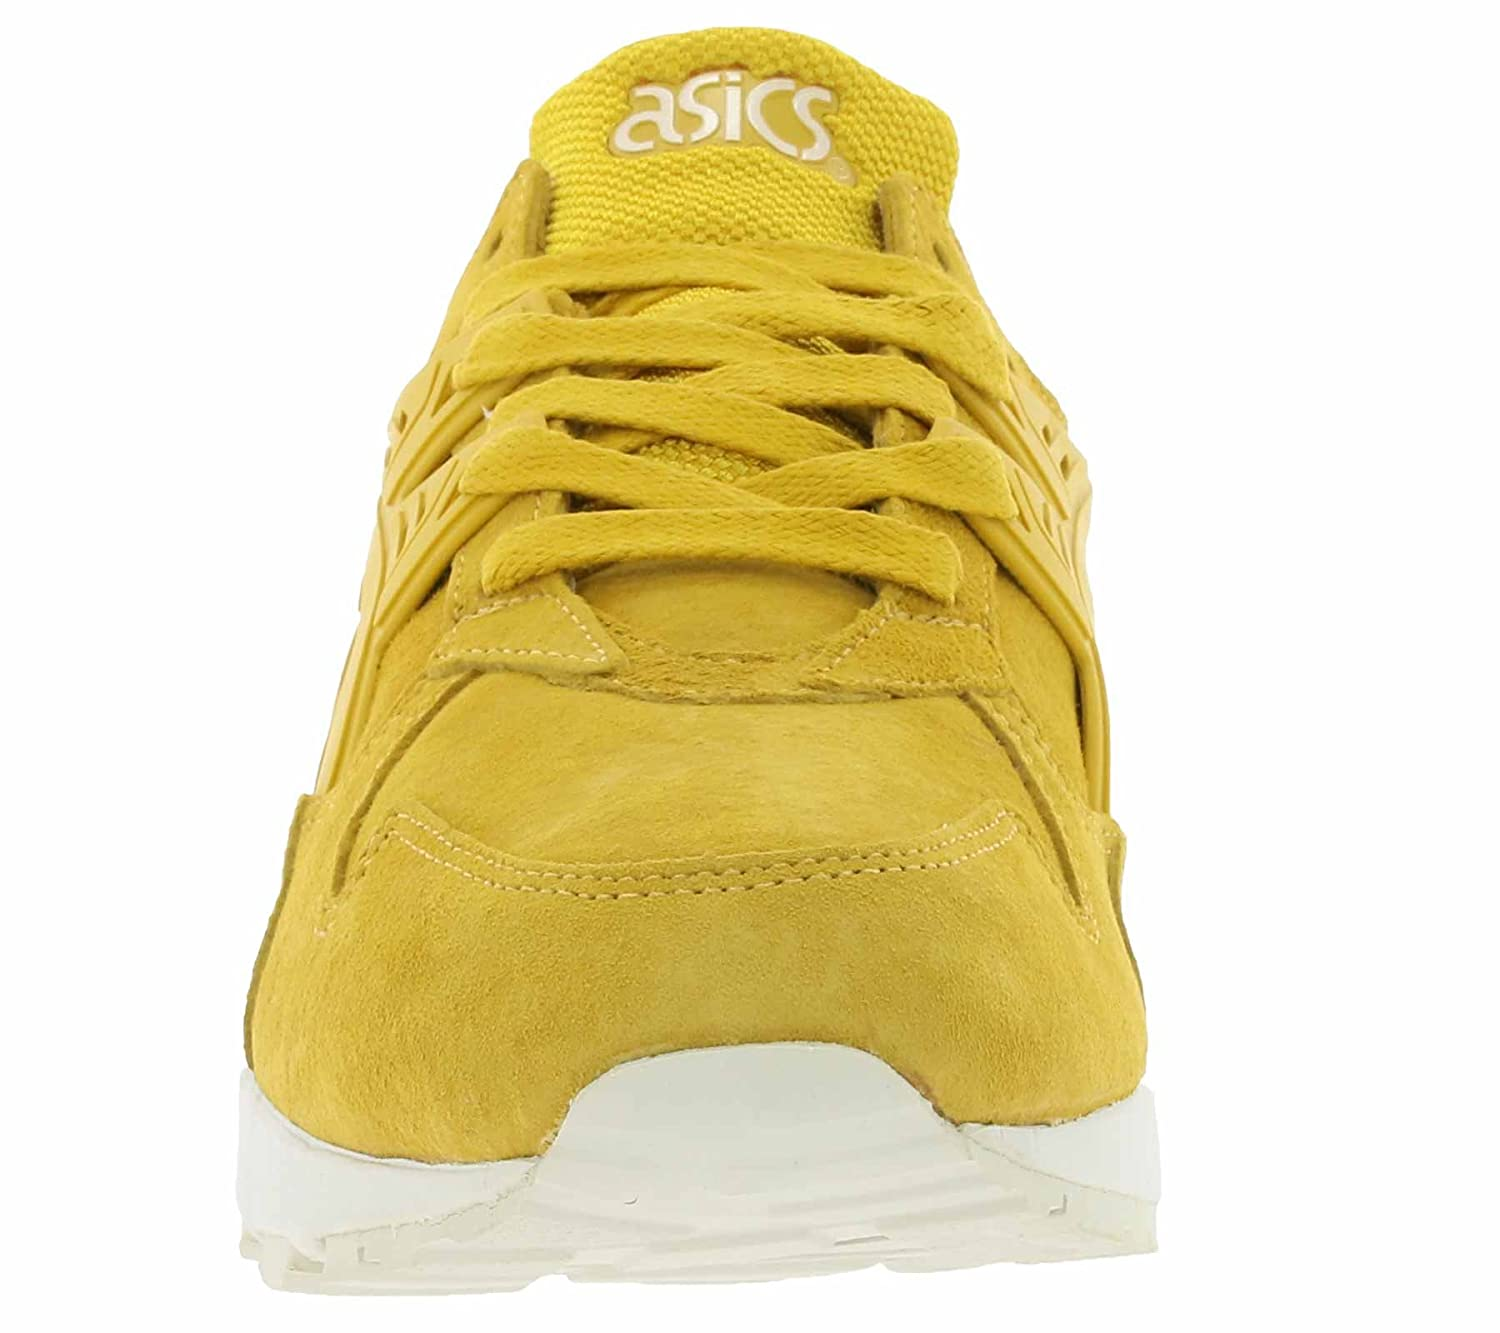 150ae82c Asics - Gel-Kayano Trainer Golden Yellow - Sneakers Men: Amazon.co ...